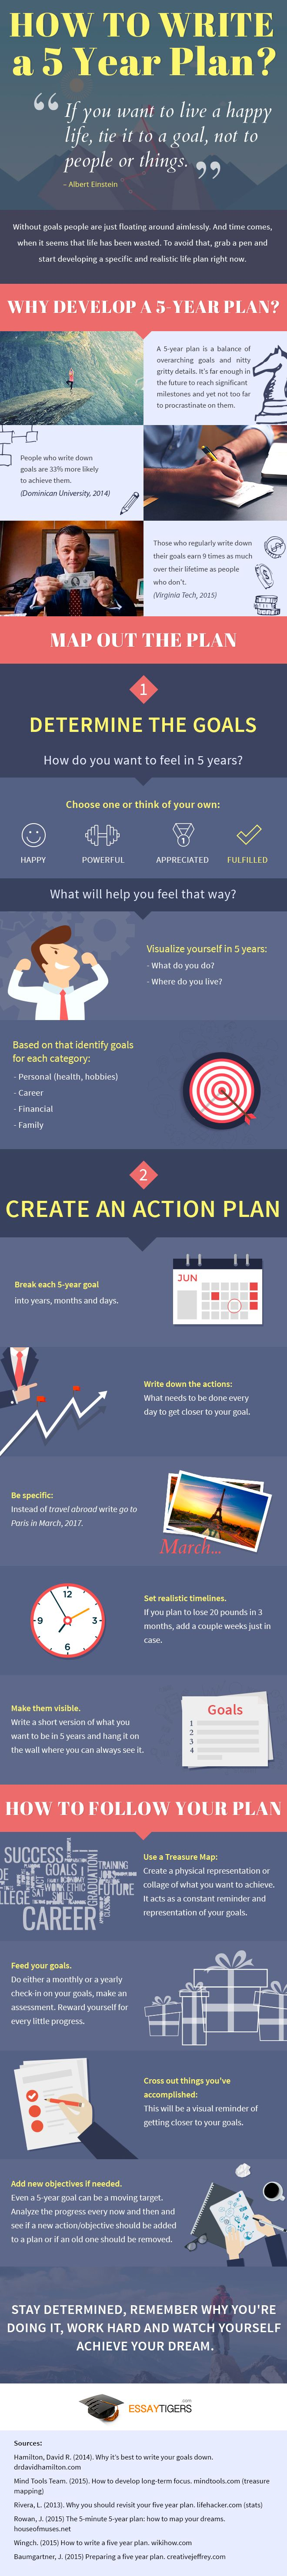 best goal setting life ideas goal setting  having a strategic goal is good it means you have something to look forward to